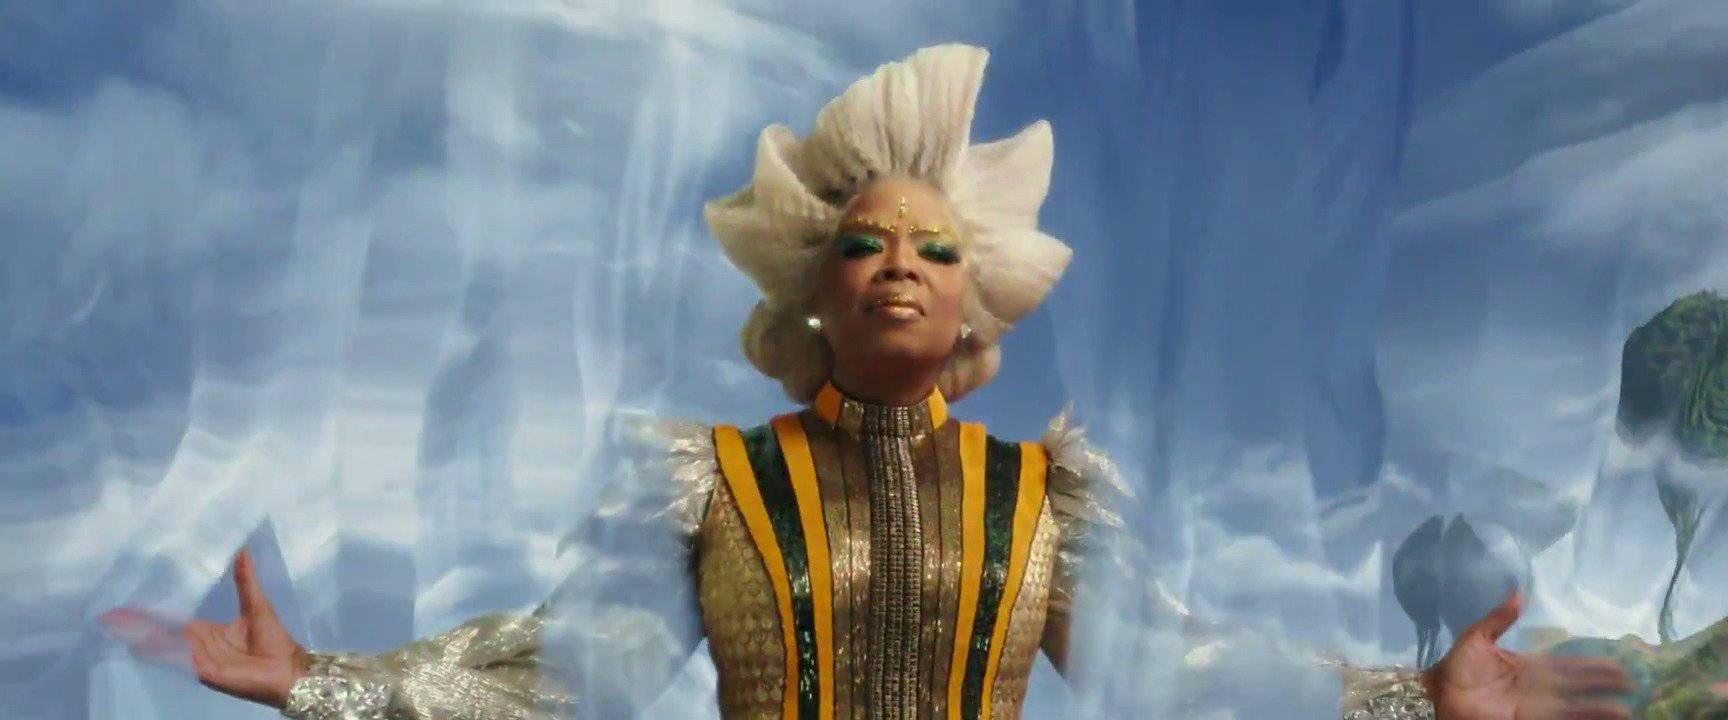 Here it is! The brand-new #WrinkleInTime trailer. See you in theaters, March 9th. With love, Mrs. Which 💜 https://t.co/RHia4jFXx3